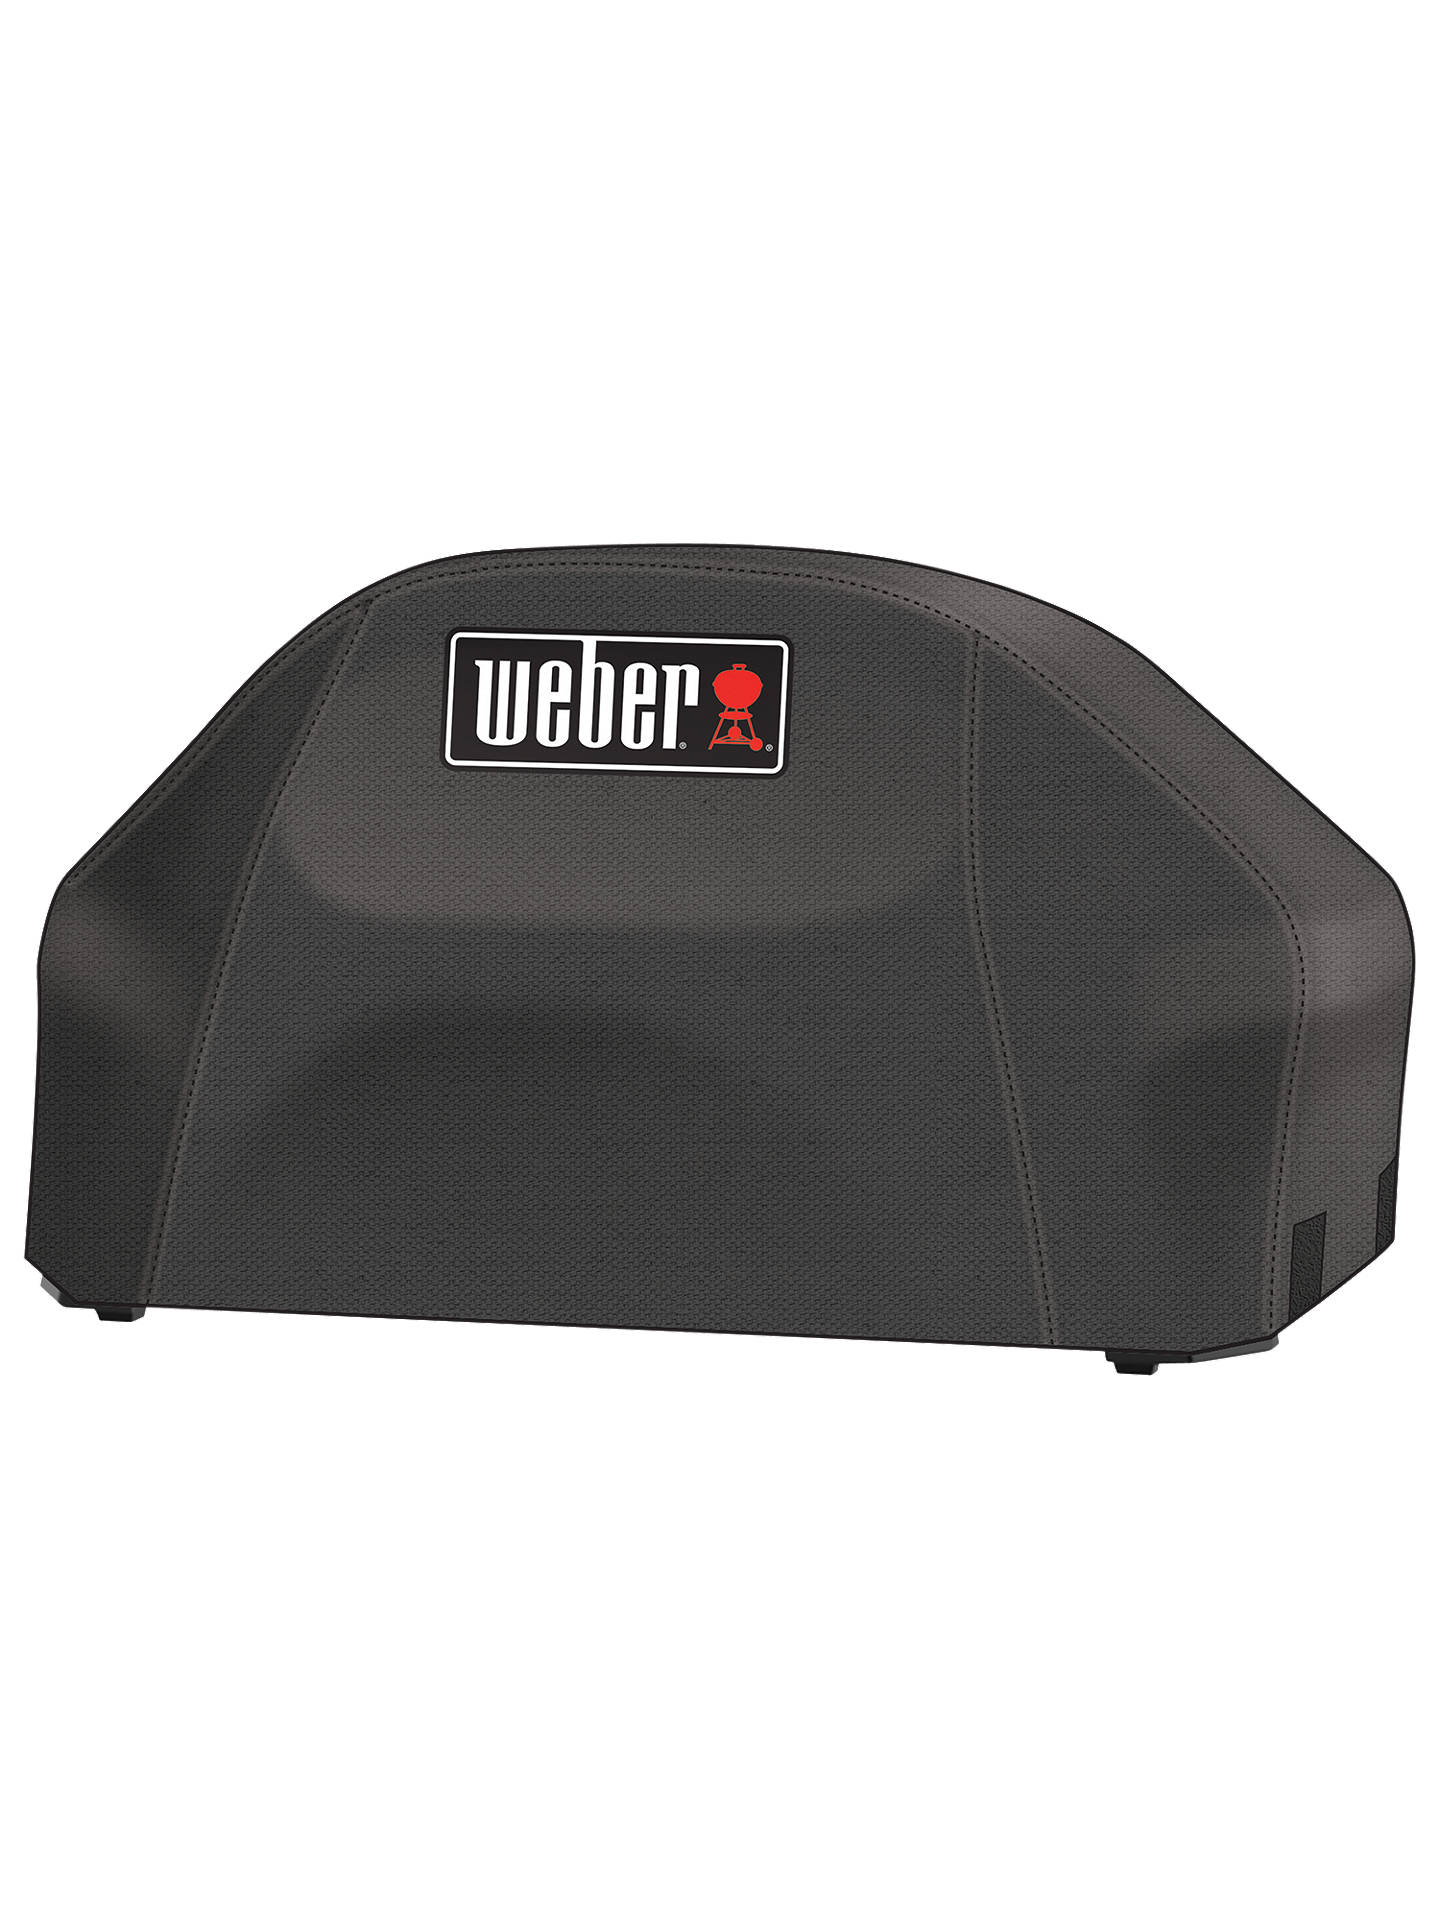 Weber Pulse 1000 Bbq Cover, Black by Weber